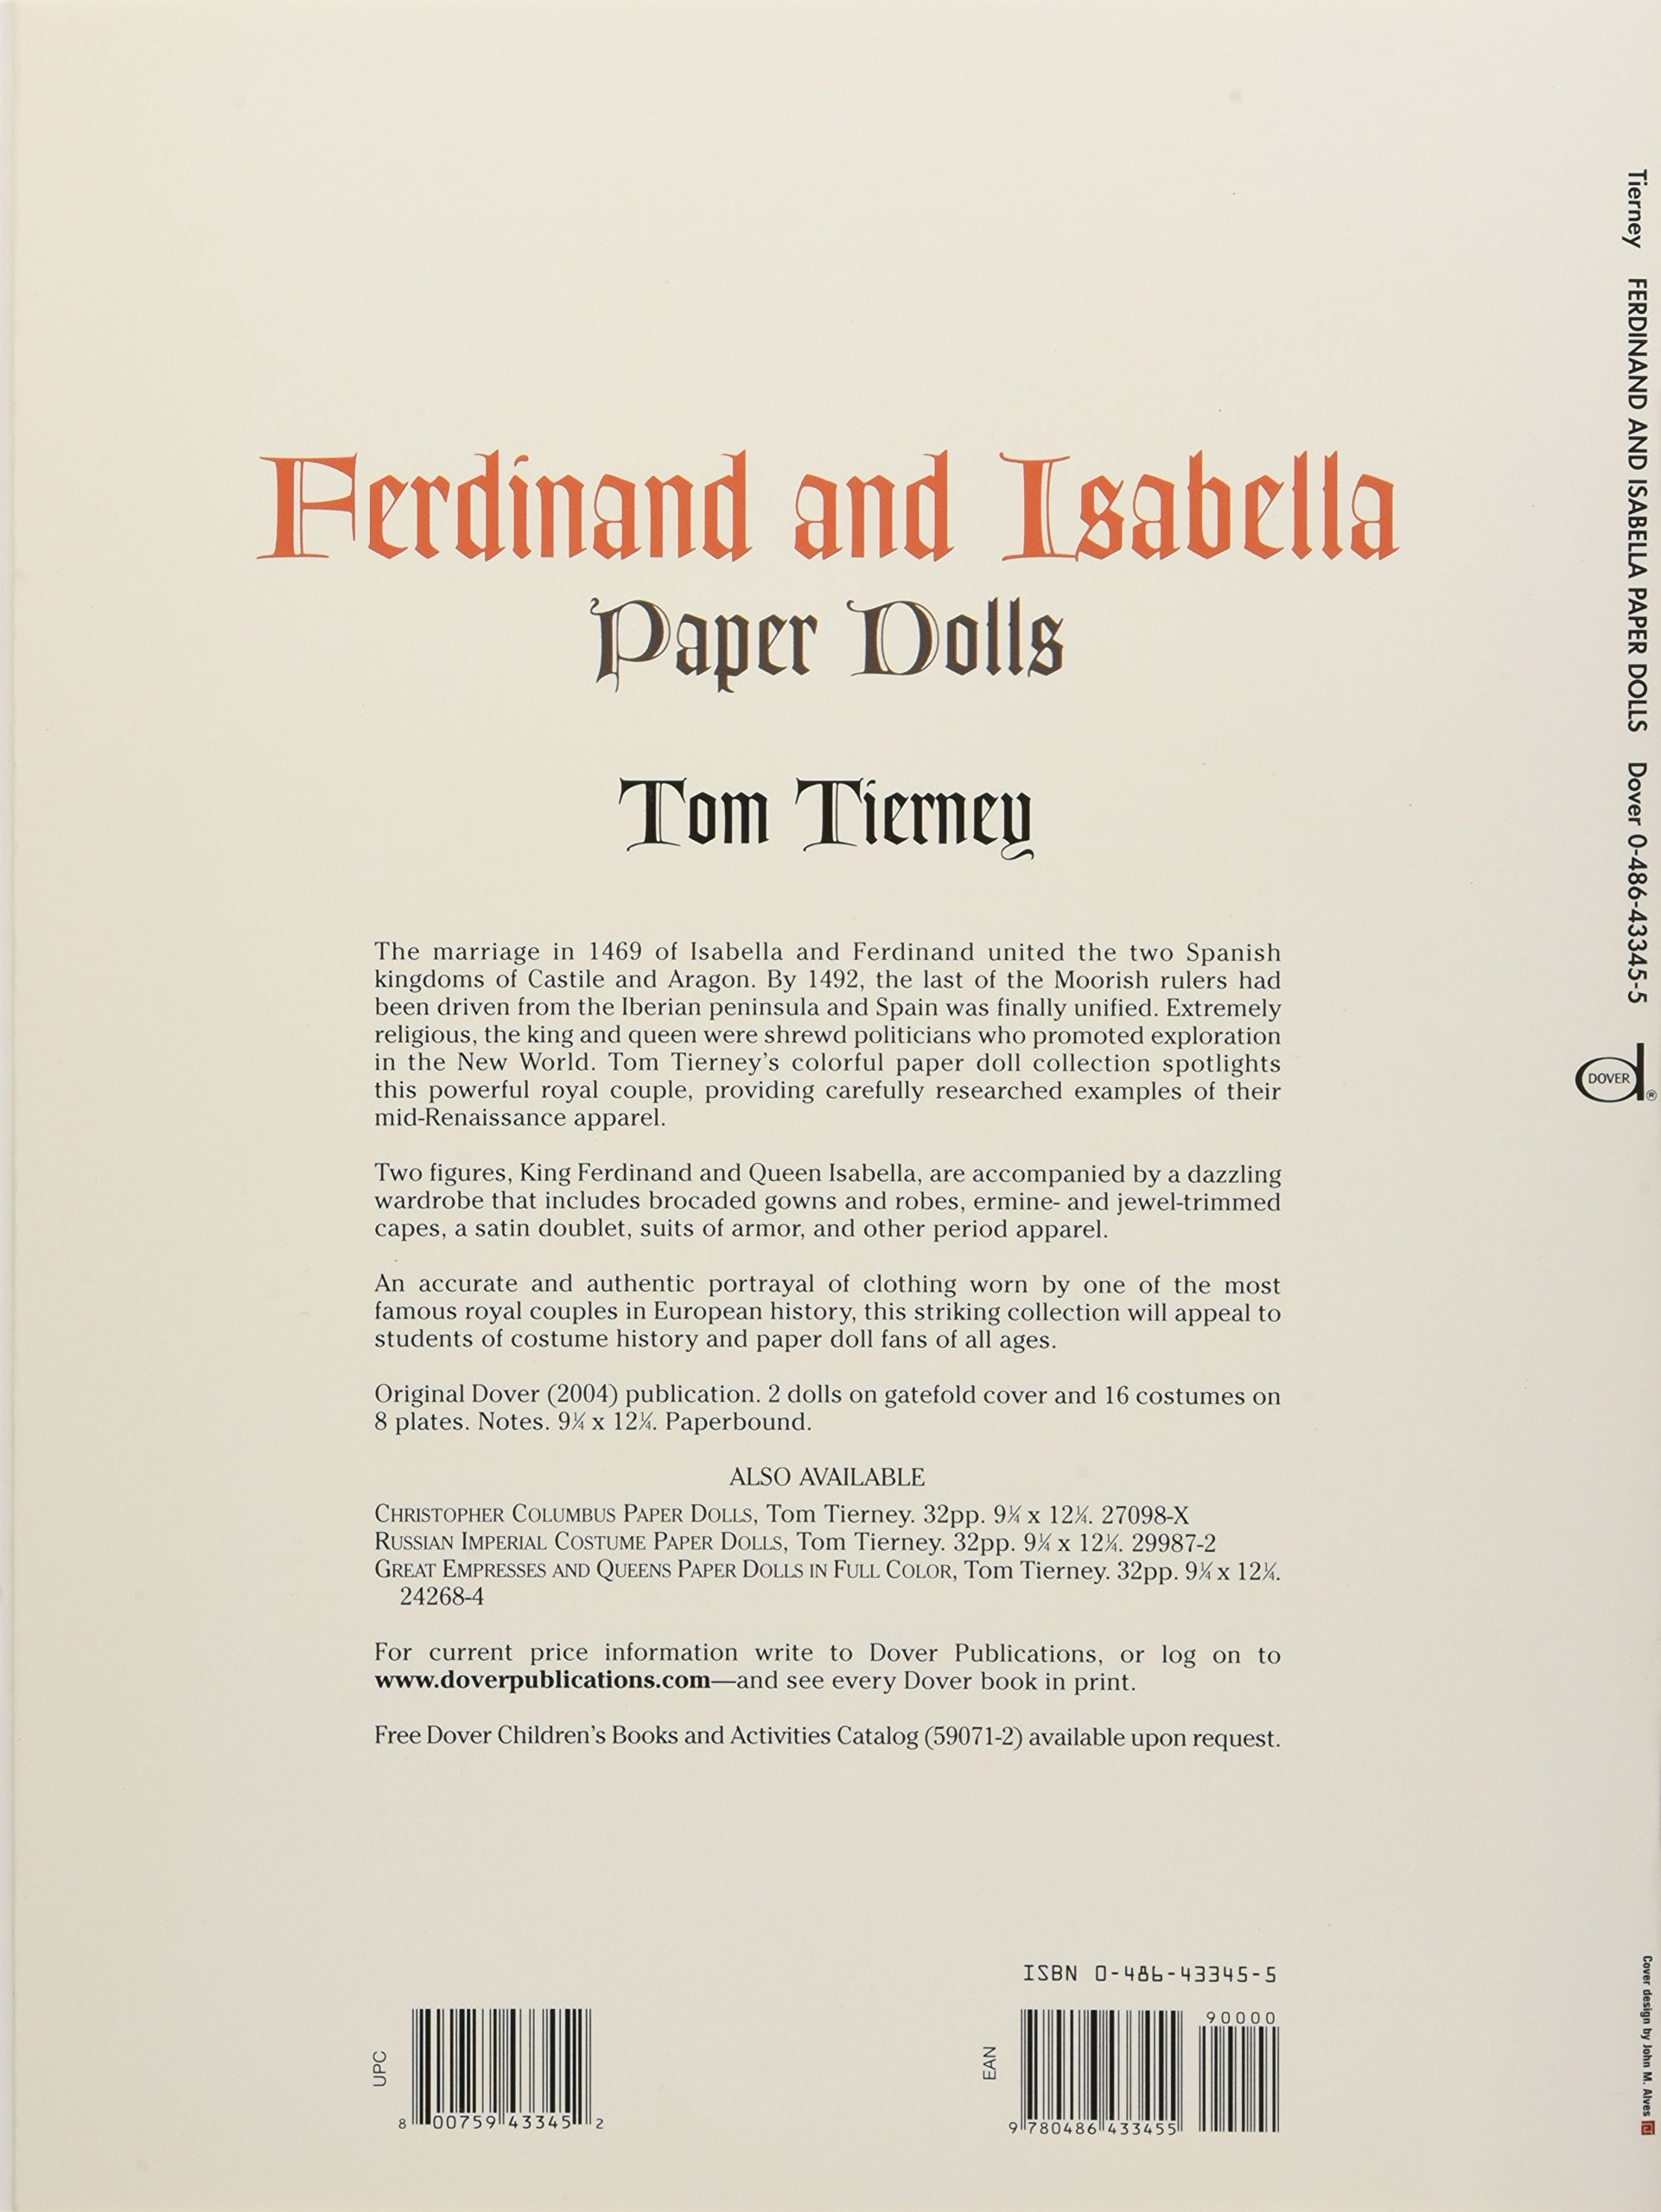 Tom tierney colonial fashions paper dolls - Ferdinand And Isabella Paper Dolls Dover Royal Paper Dolls Tom Tierney 9780486433455 Amazon Com Books